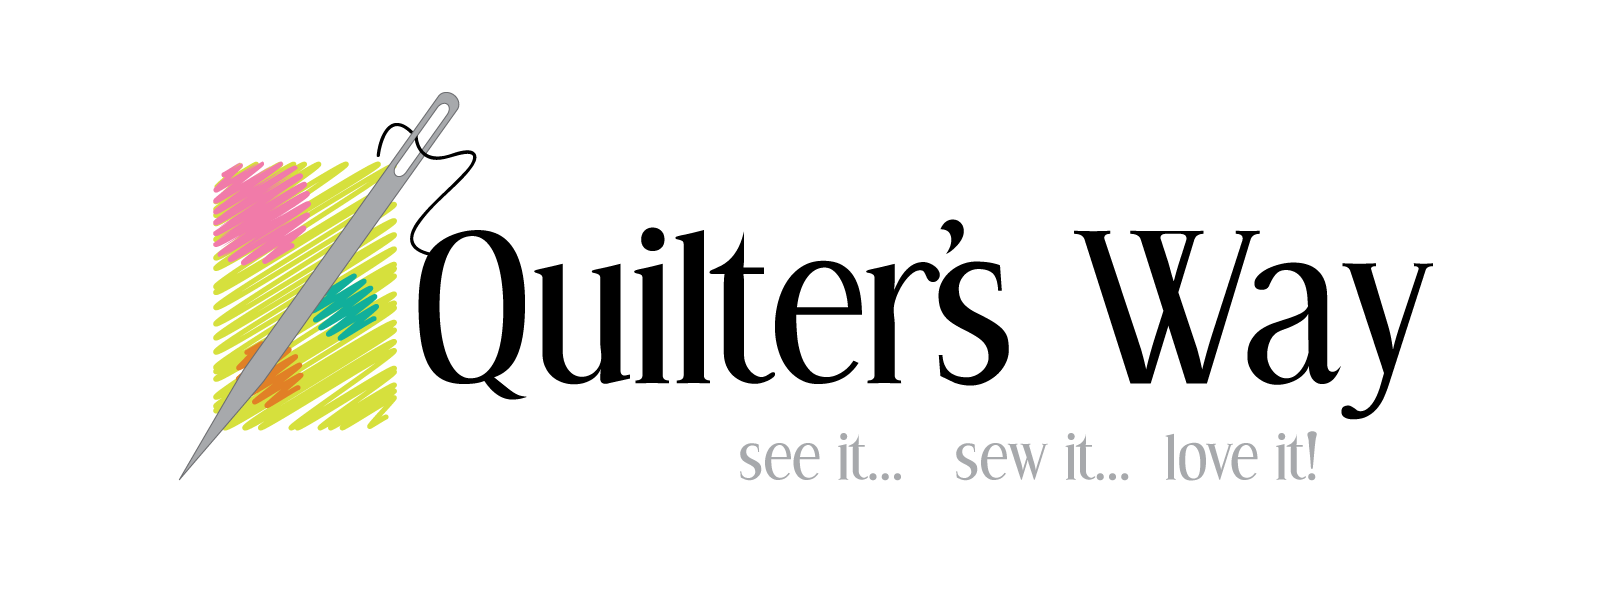 Quilter's Way Logo Redesign